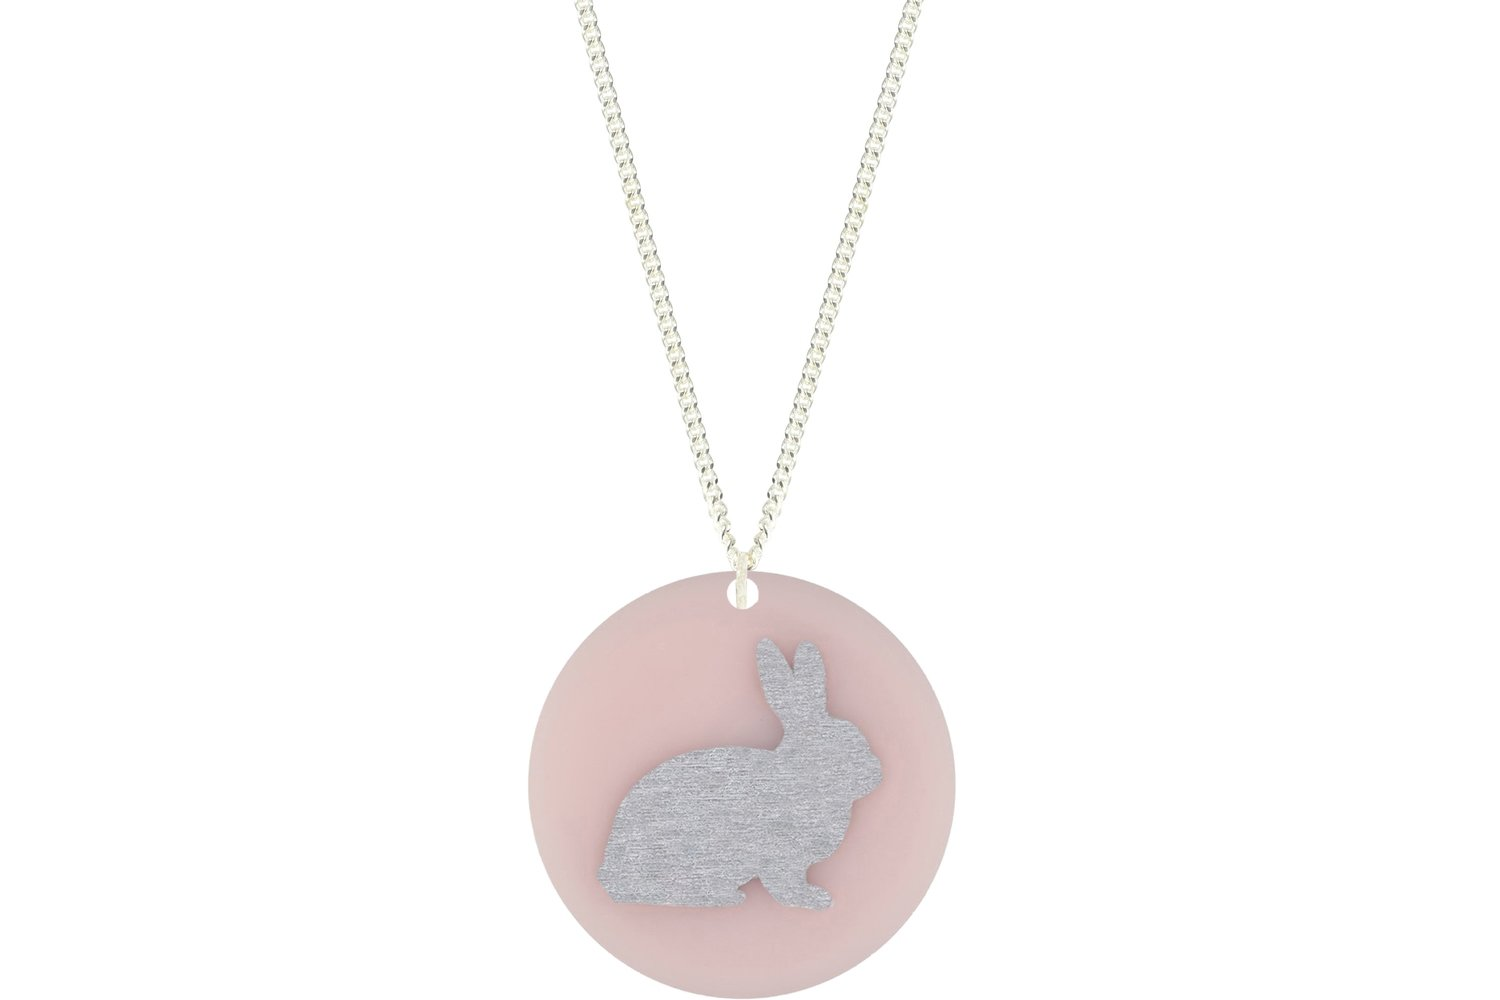 Bunny Pendant Subtle Style Refined with Paint on Chain Necklace